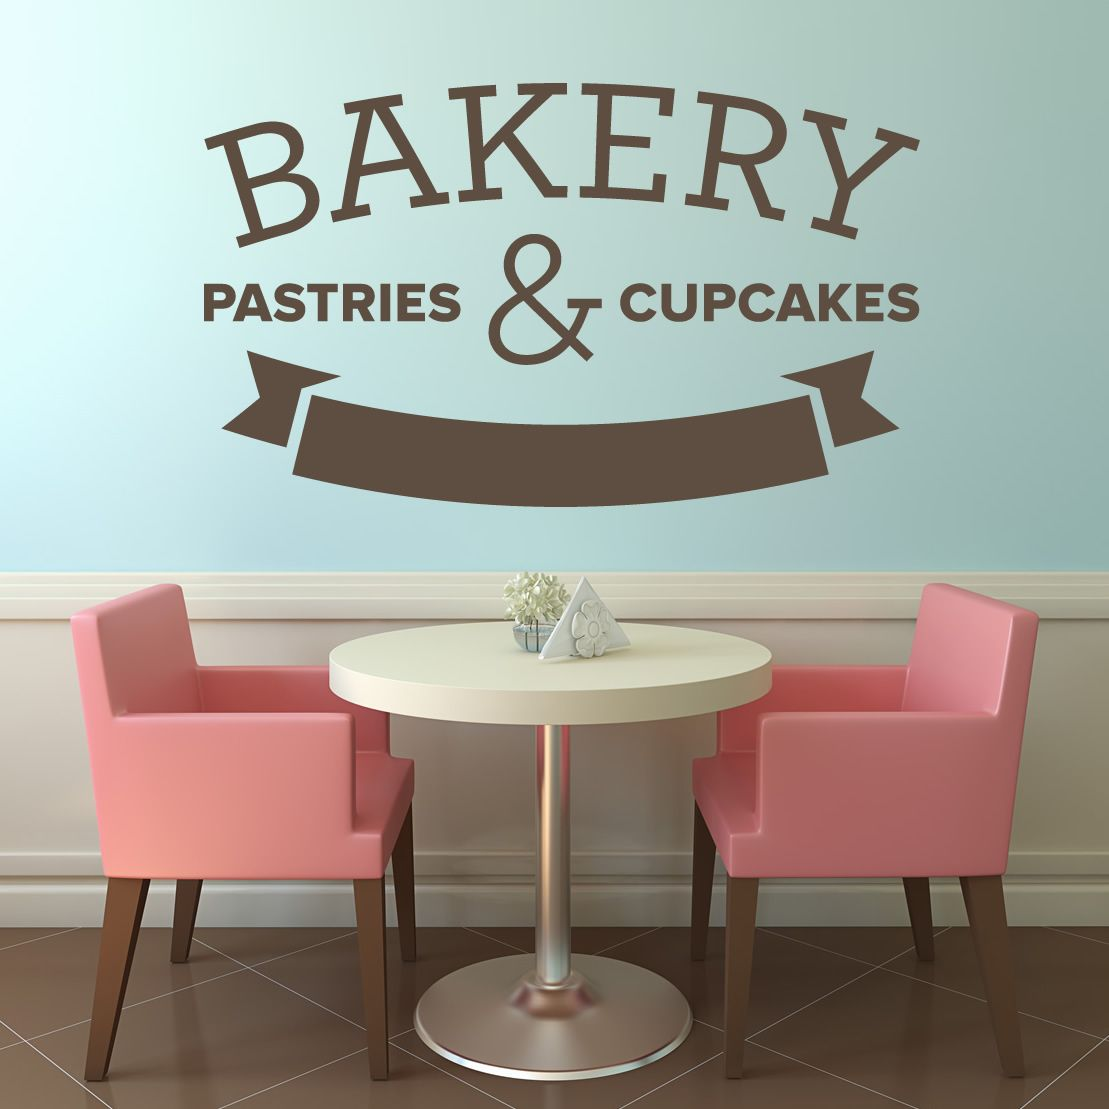 Cupcake Wall Art bakery patries and cupcakes cafe kitchen wall art decal wall